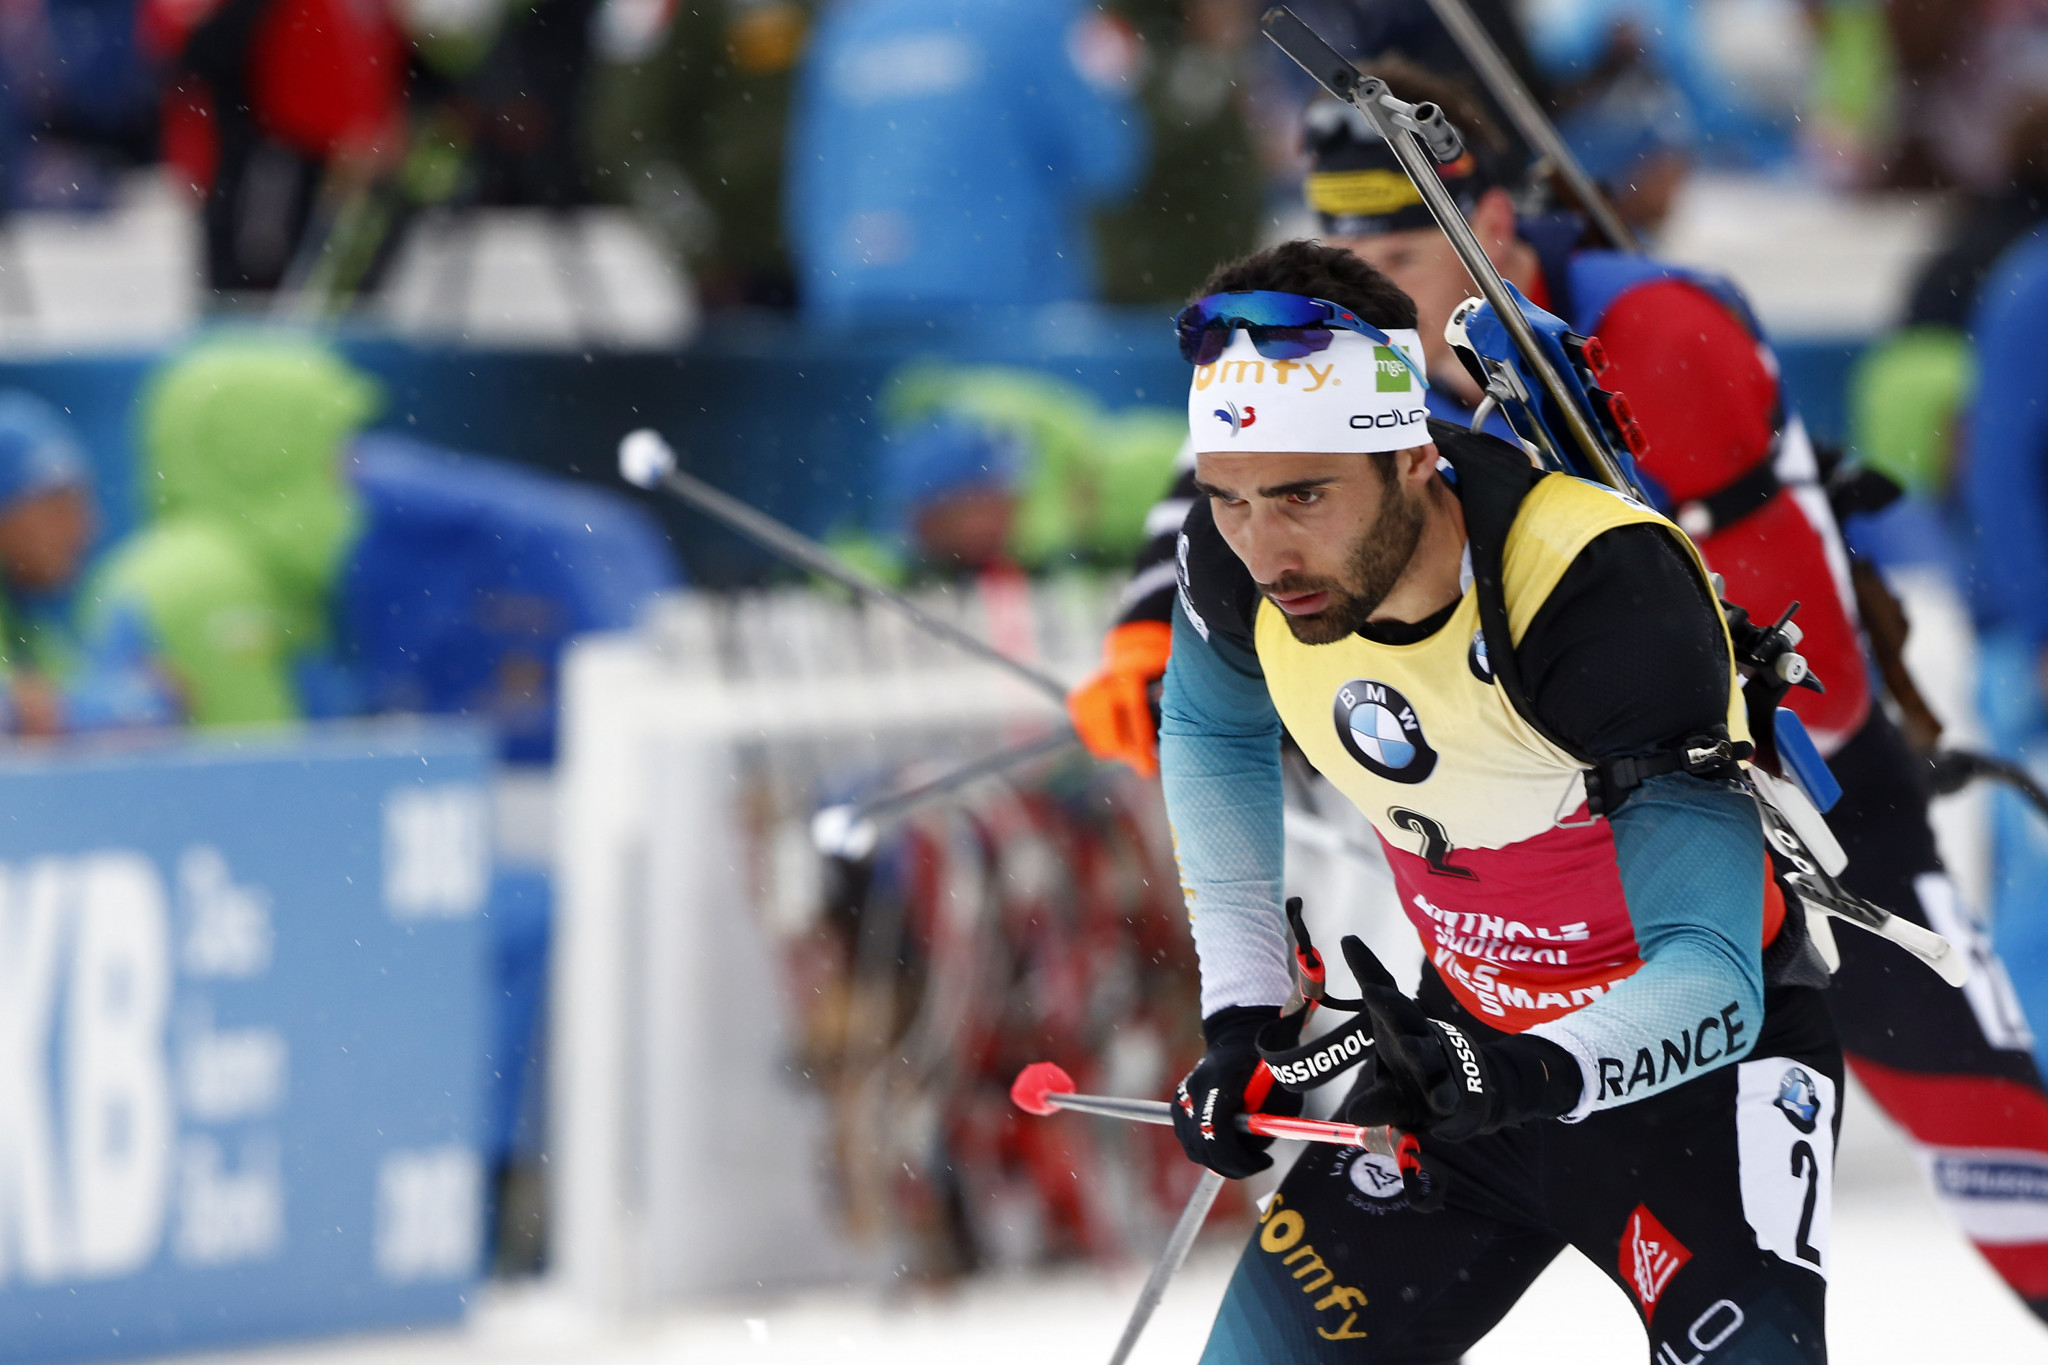 IBU World Cup season set to continue in front of empty crowd in Czech Republic